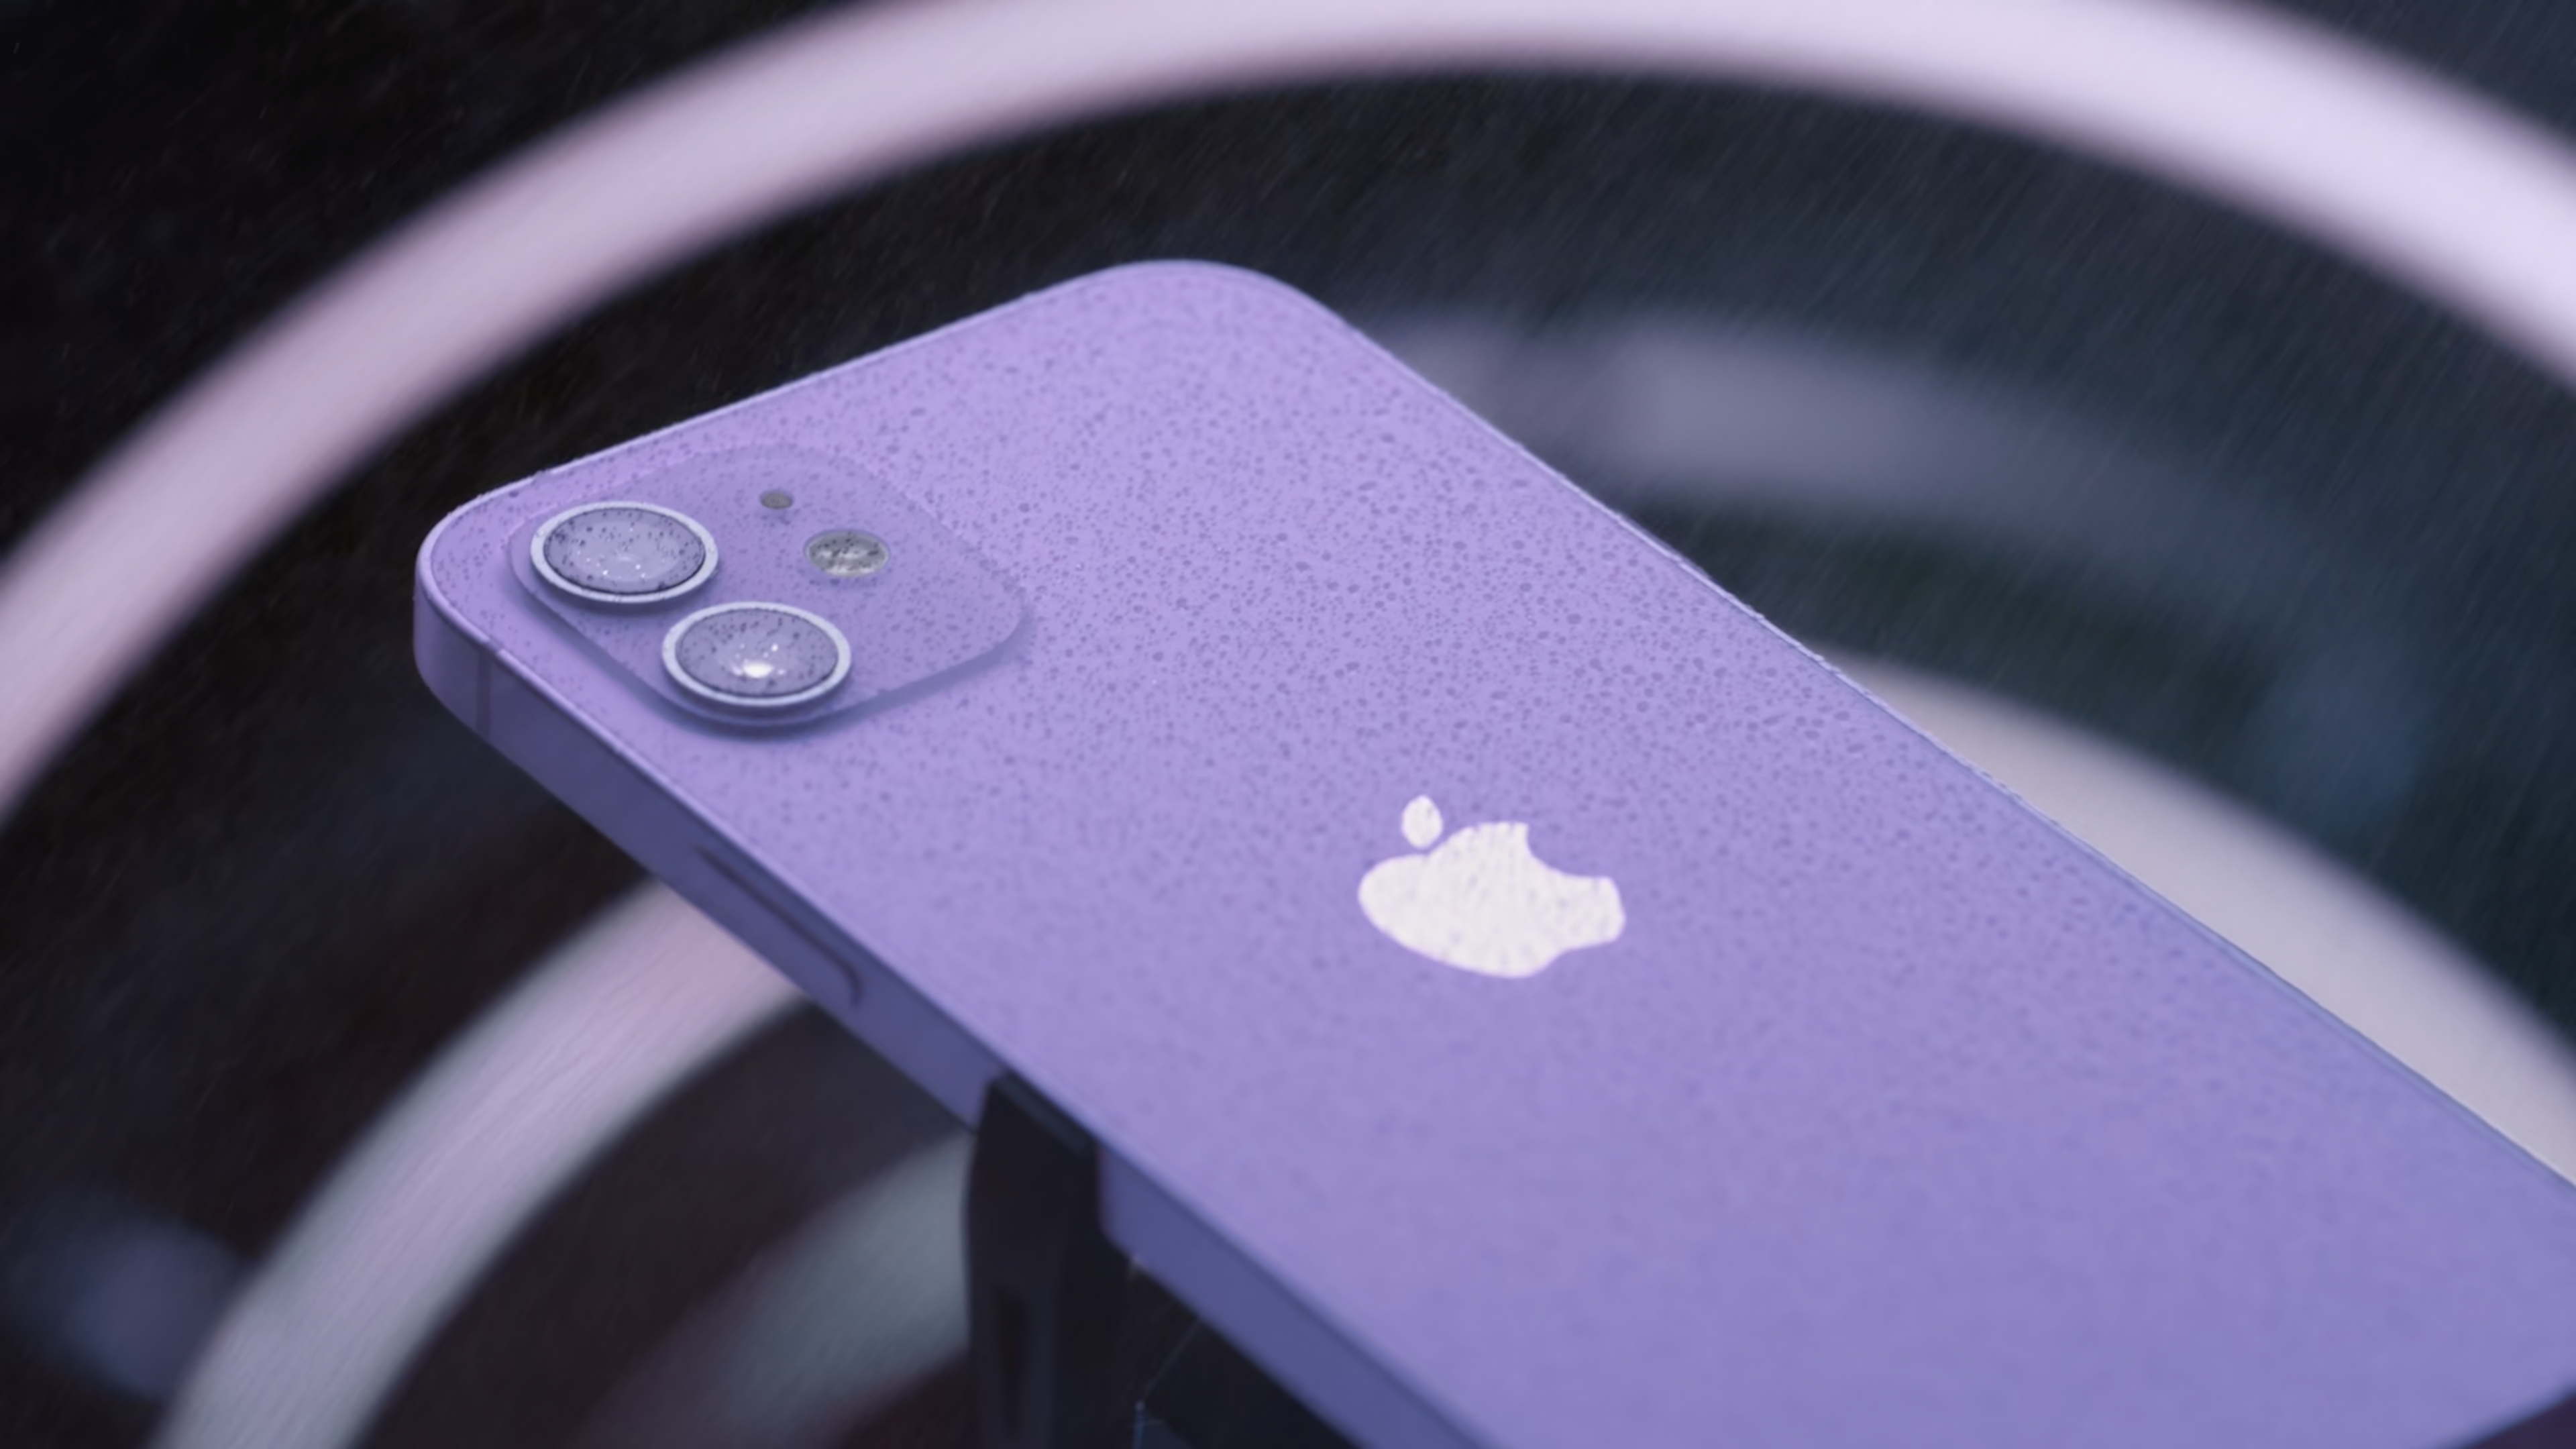 Mmmmm purple: Apple just gave iPhone 12 and 12 Mini a new color for spring – CNET